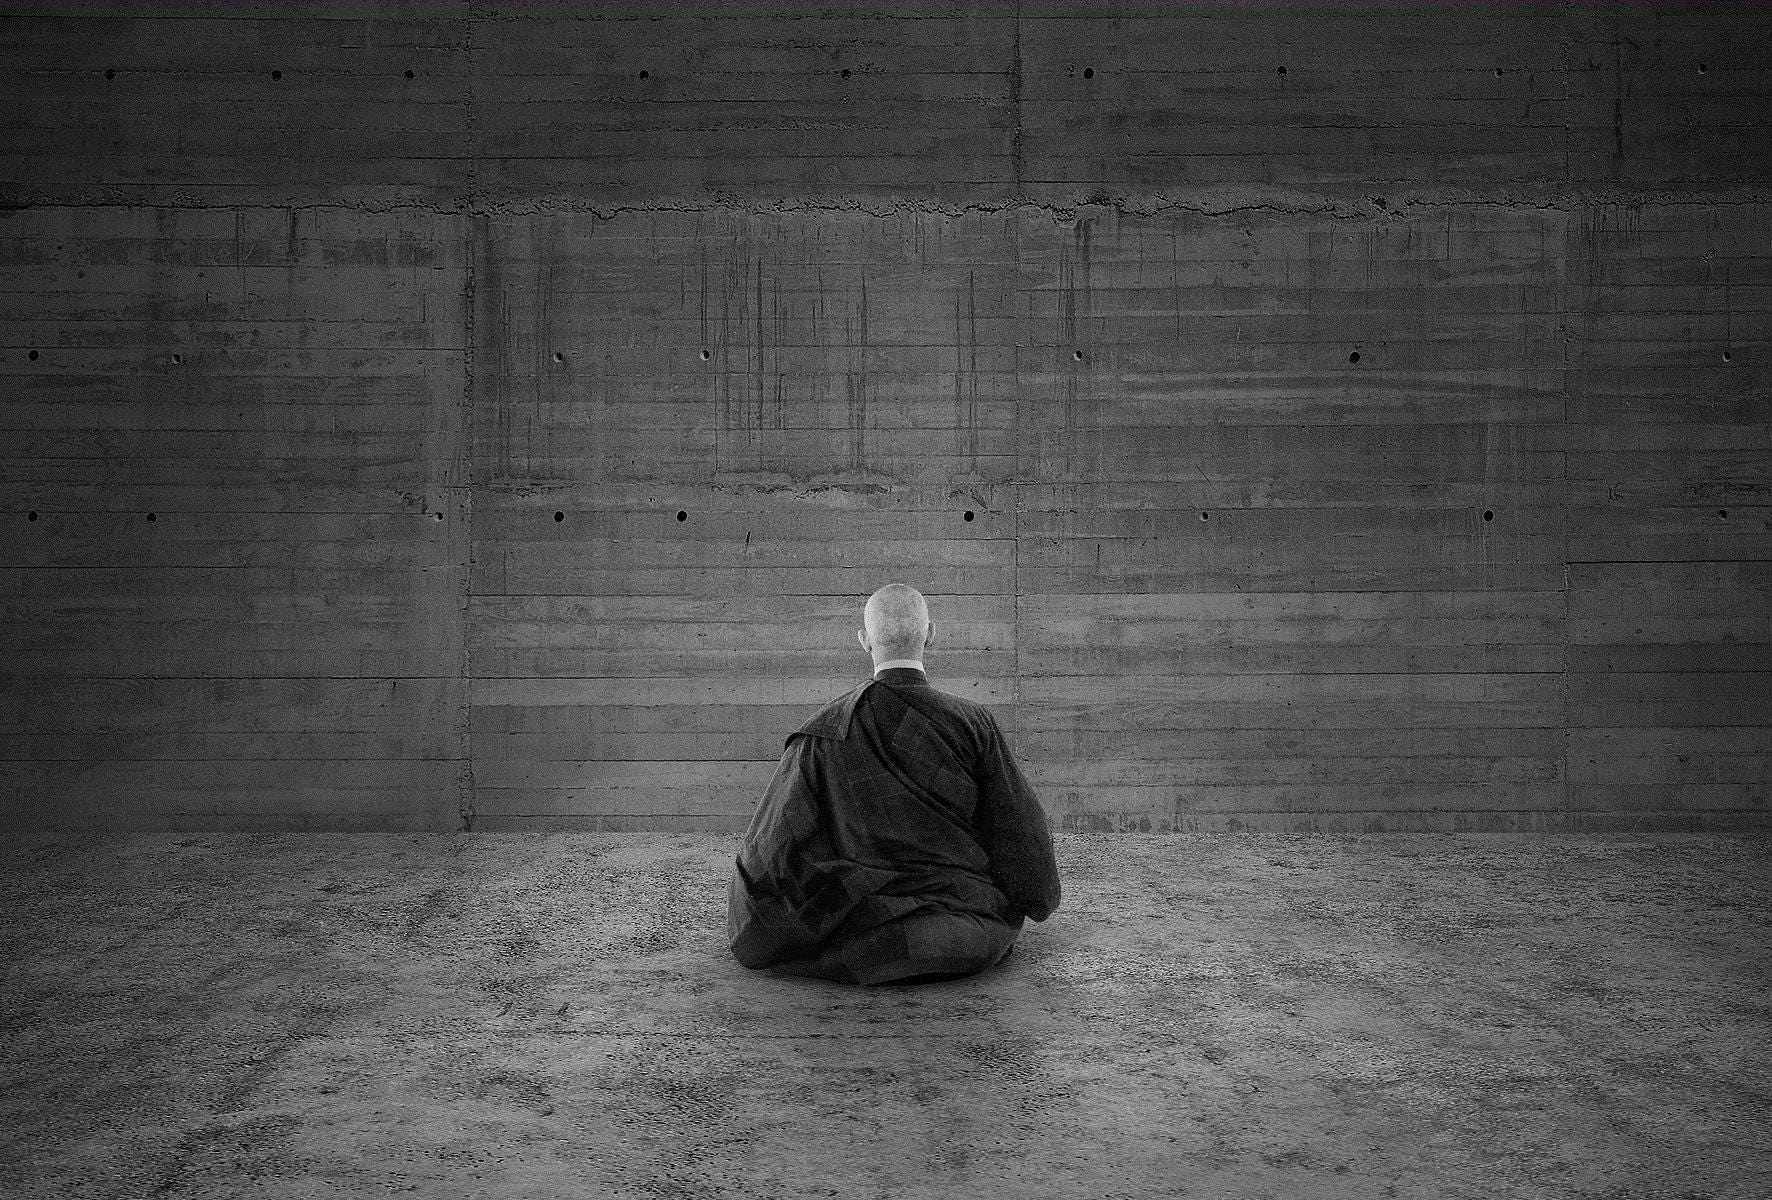 Buddhism Print Black White Buddhist Monk In Meditation